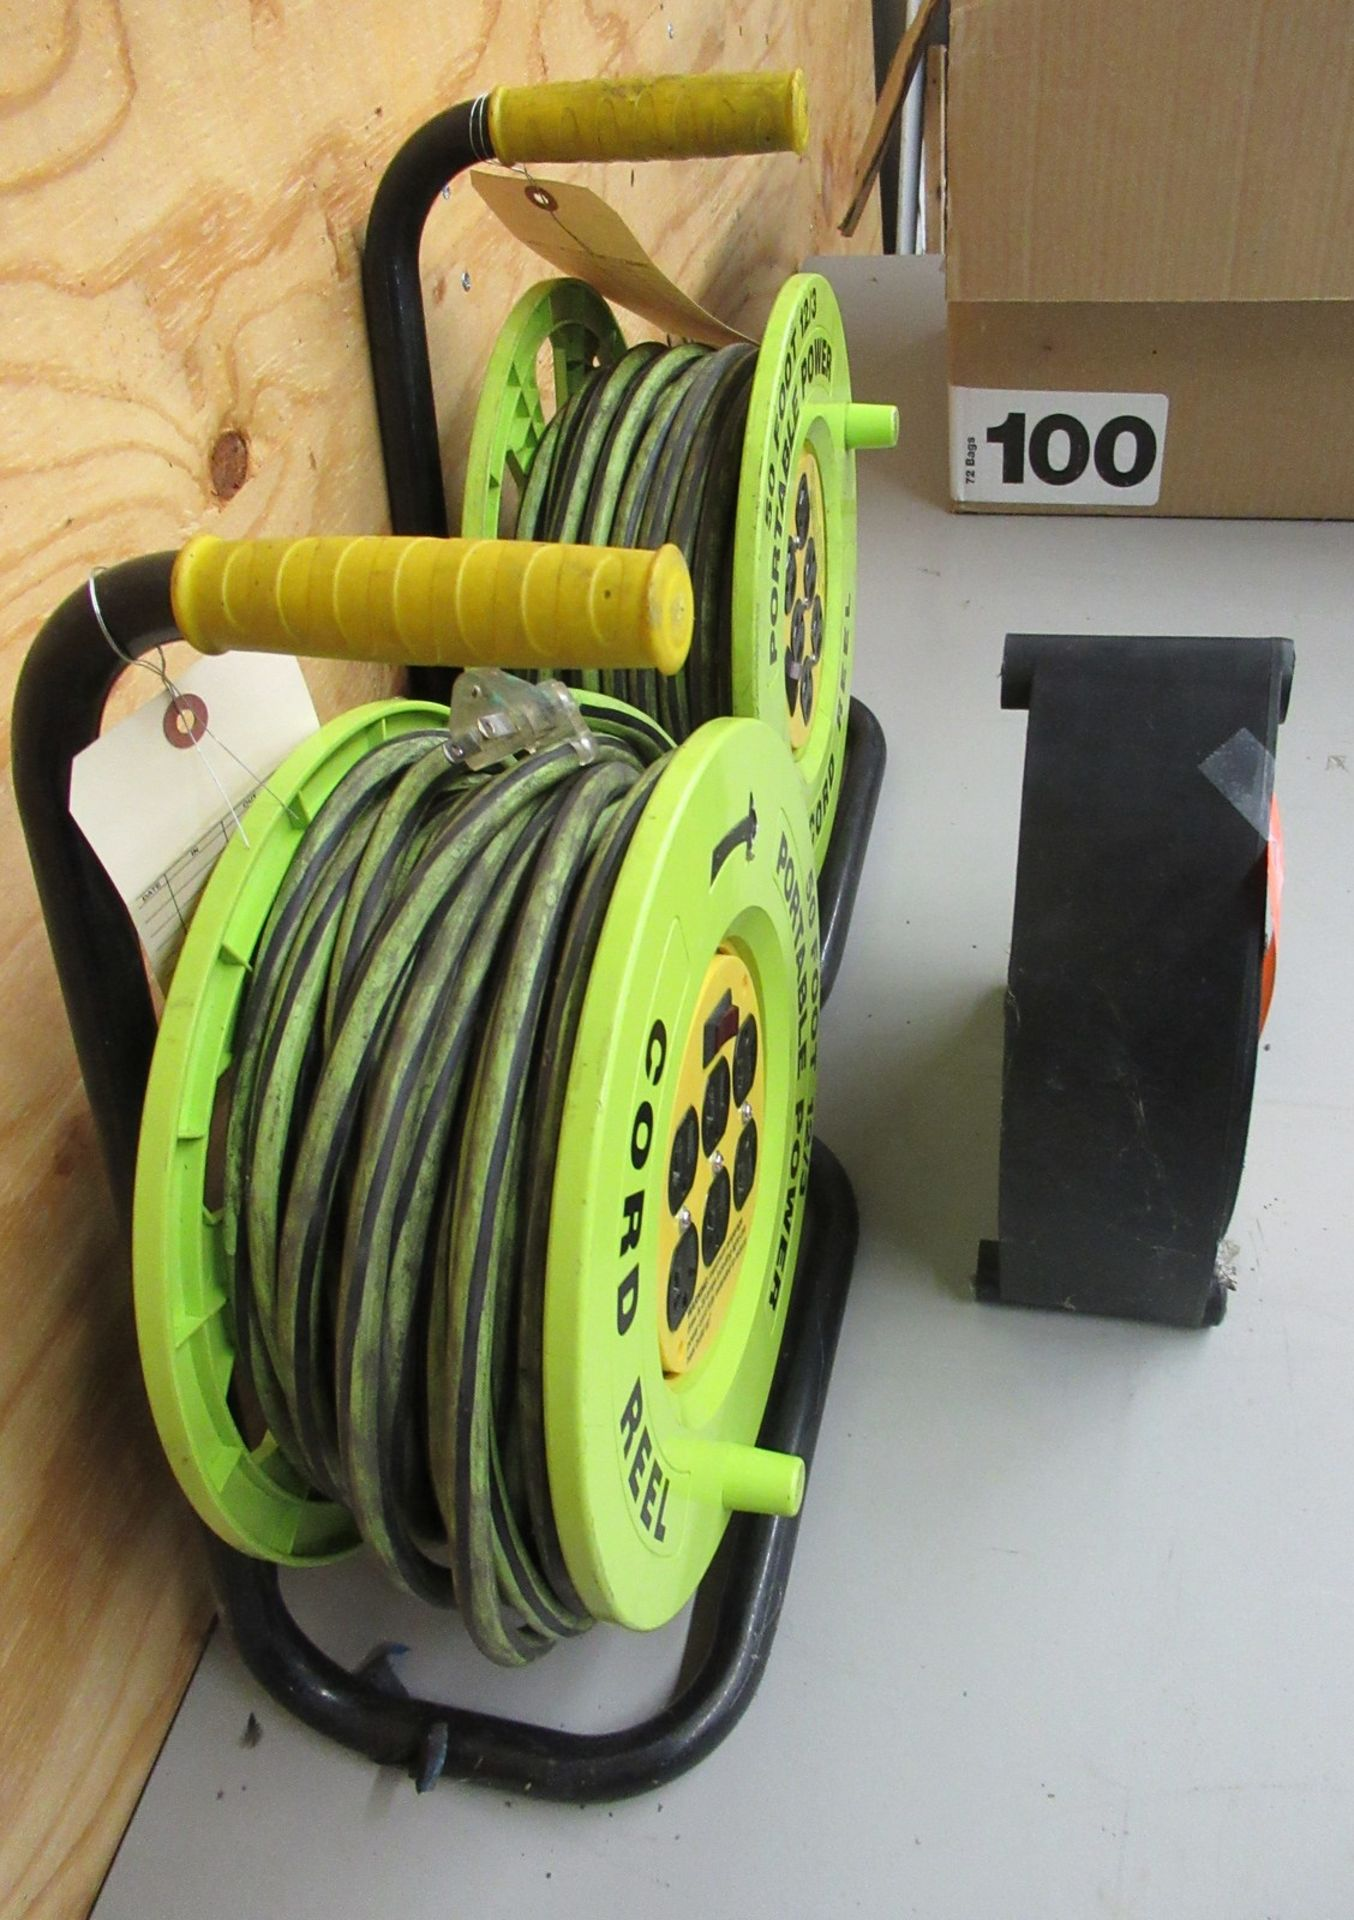 Lot 206 - 3 Heavy Duty Extension Cord and Reels S-19880 50 ft & 4 Extension Cords